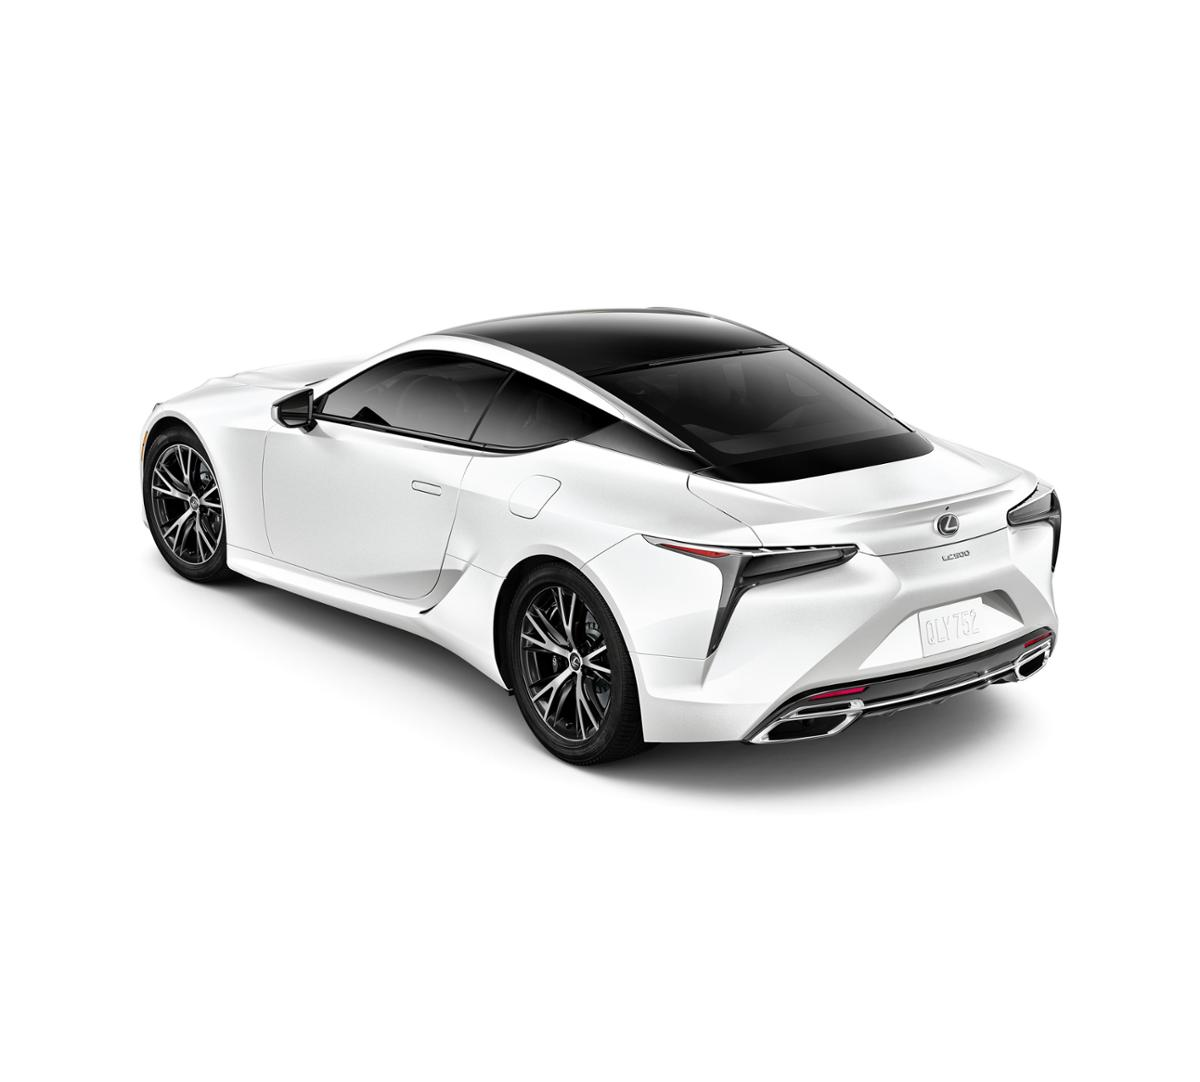 oakland ultra white 2018 lexus lc 500 car for sale 47966. Black Bedroom Furniture Sets. Home Design Ideas